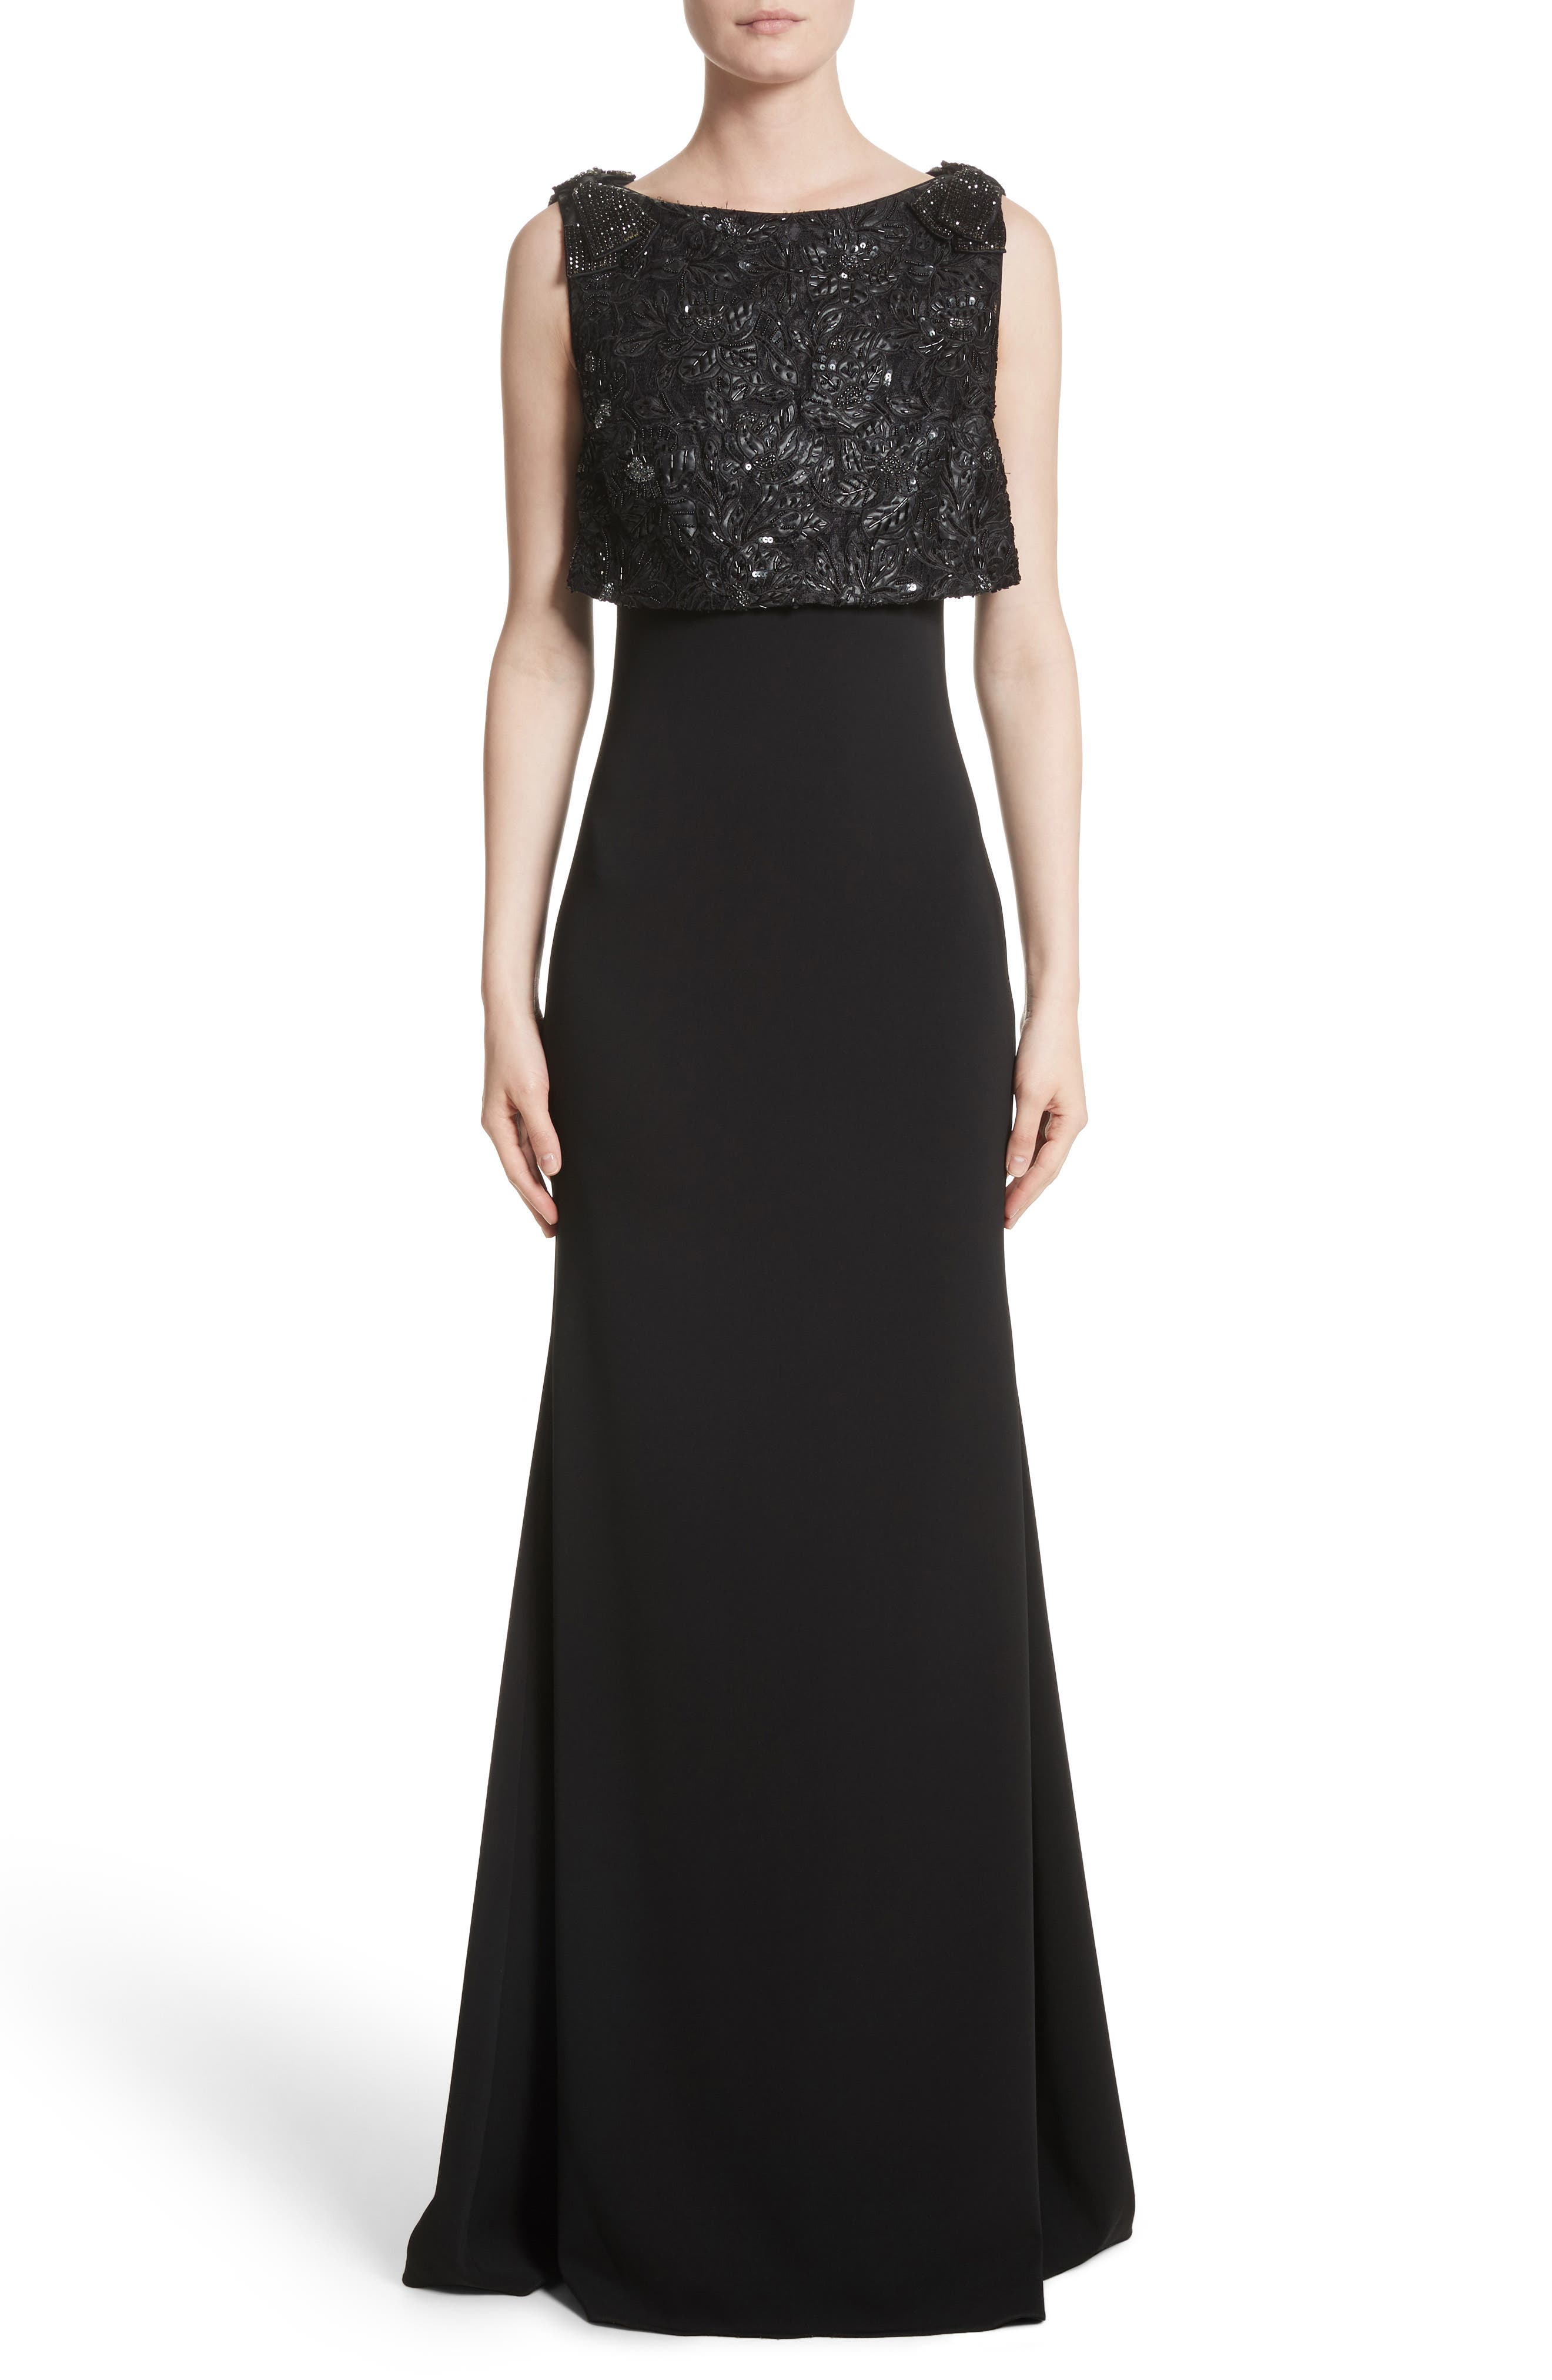 Badgley Mischka Couture Embellished Popover Gown,                         Main,                         color, Black